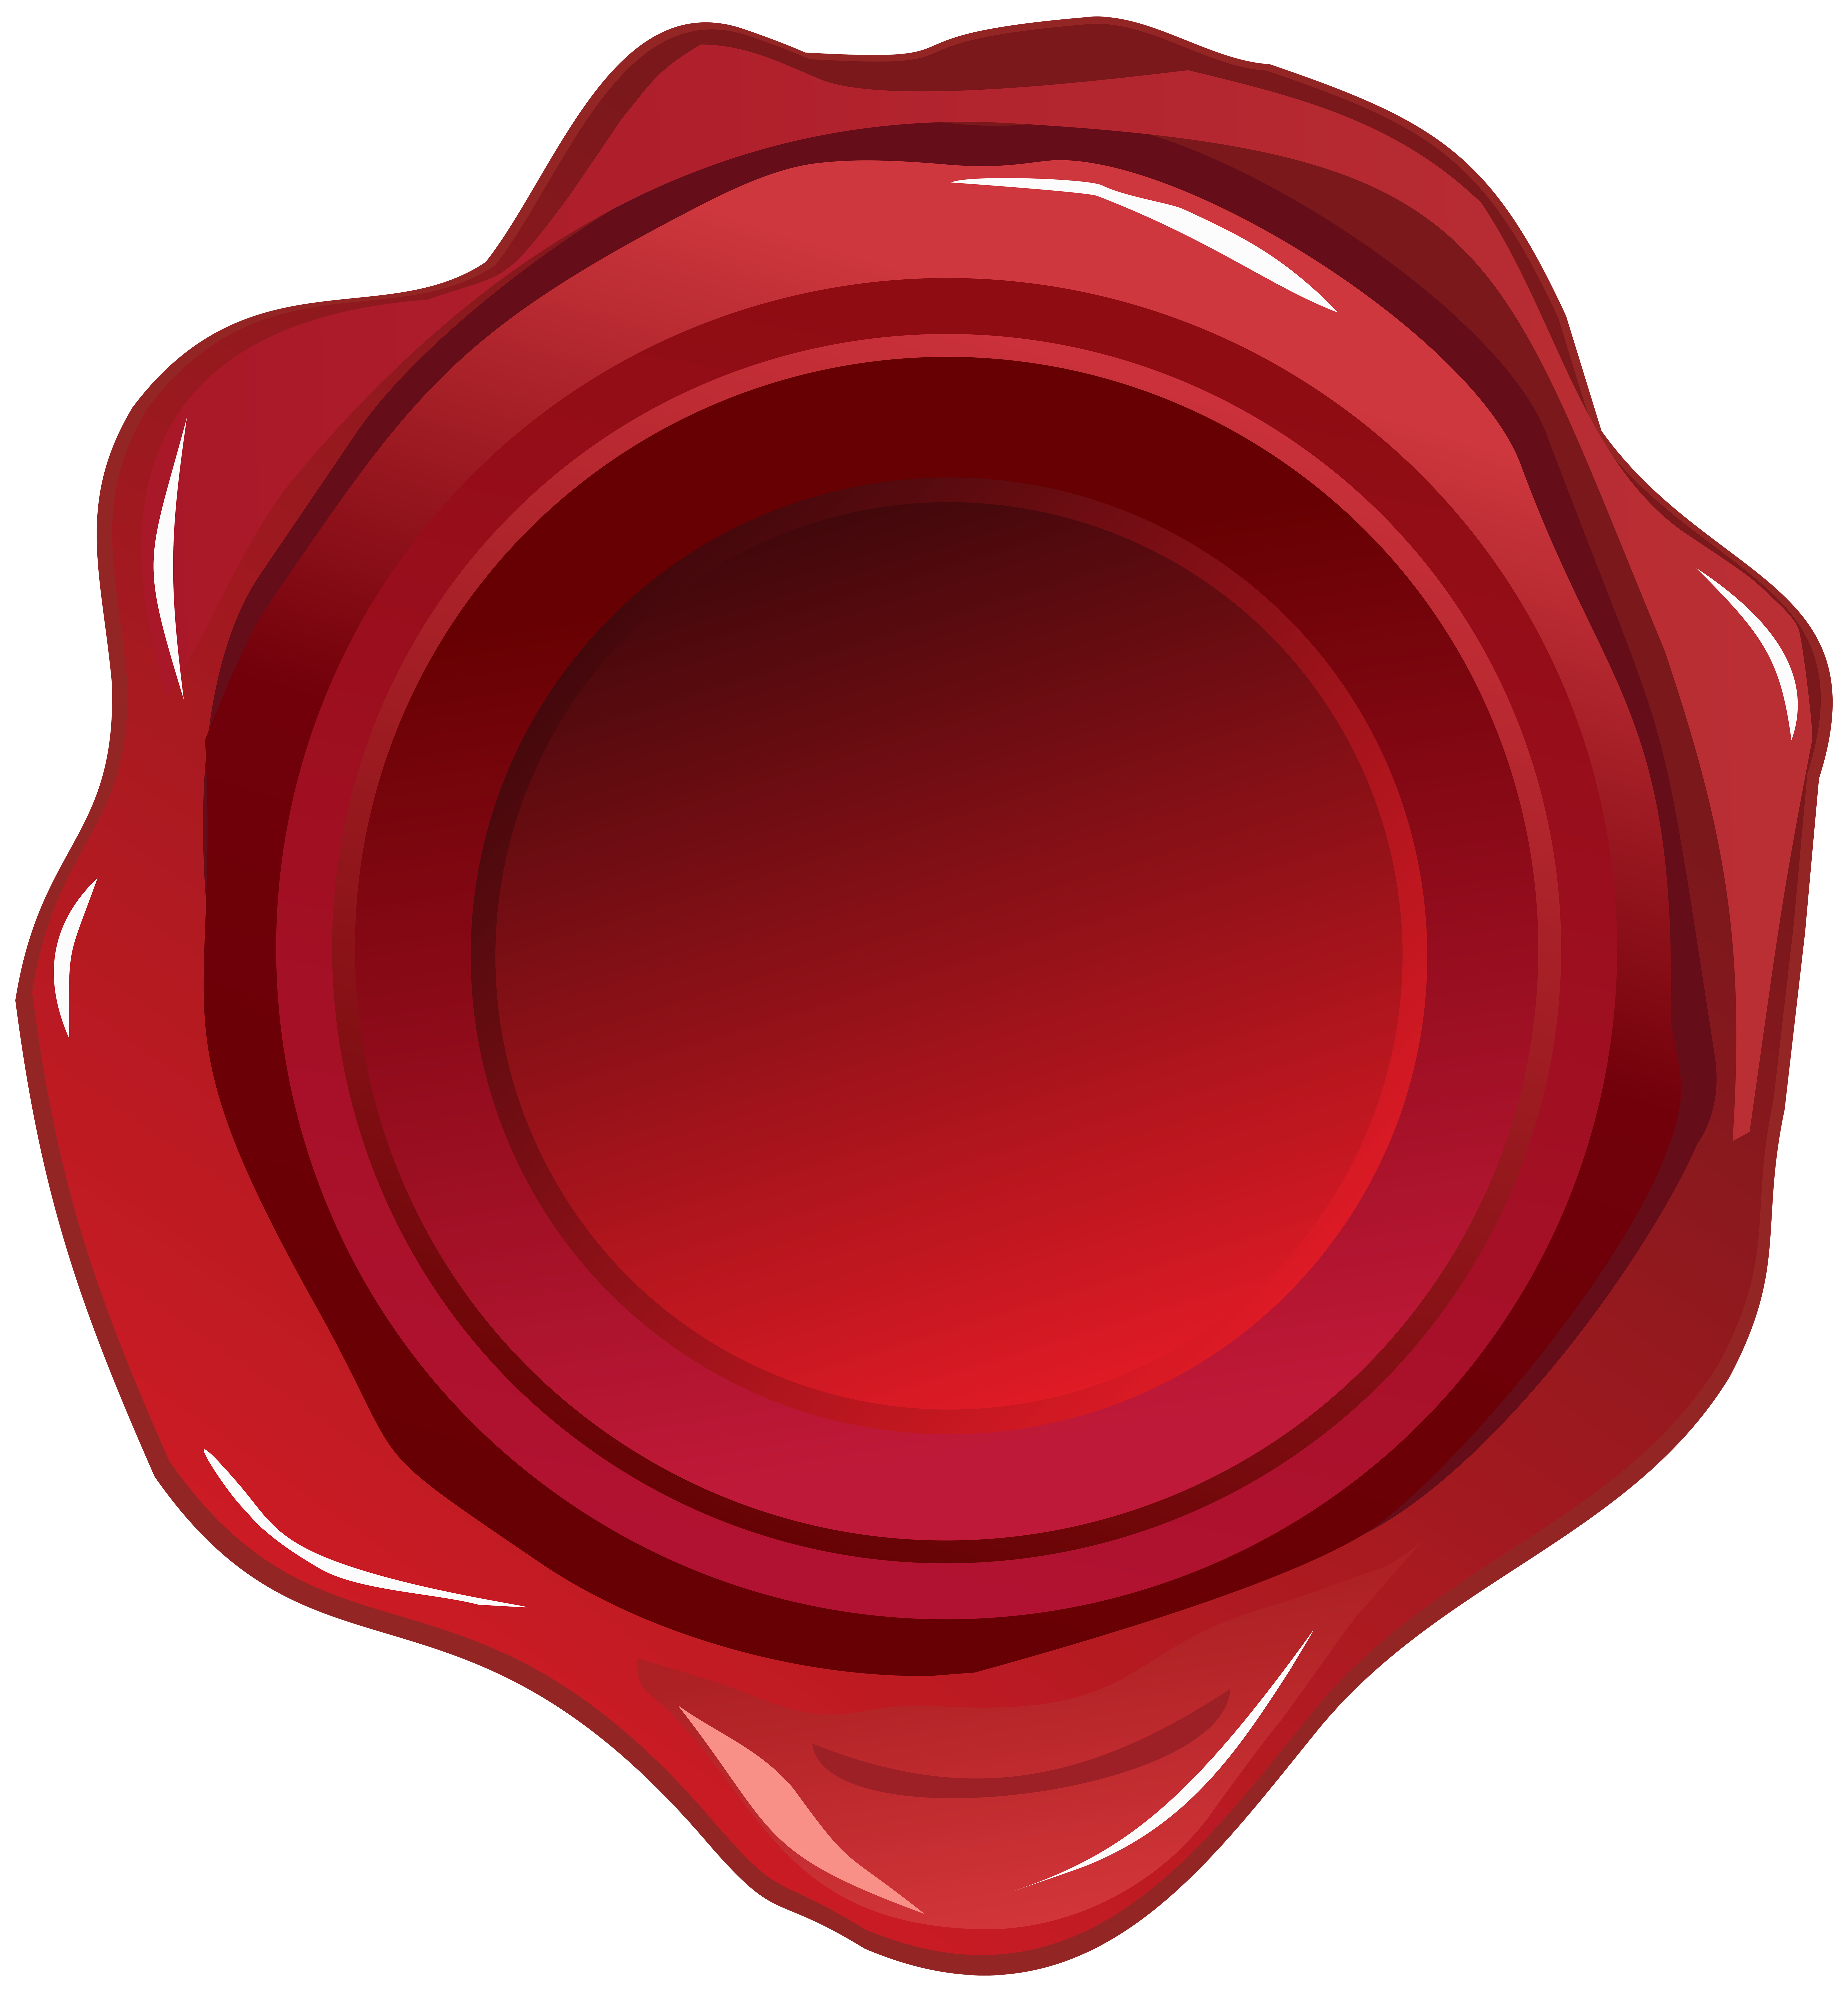 Wax seal clipart banner library stock Red Wax Seal PNG Clip Art Image | Gallery Yopriceville ... banner library stock